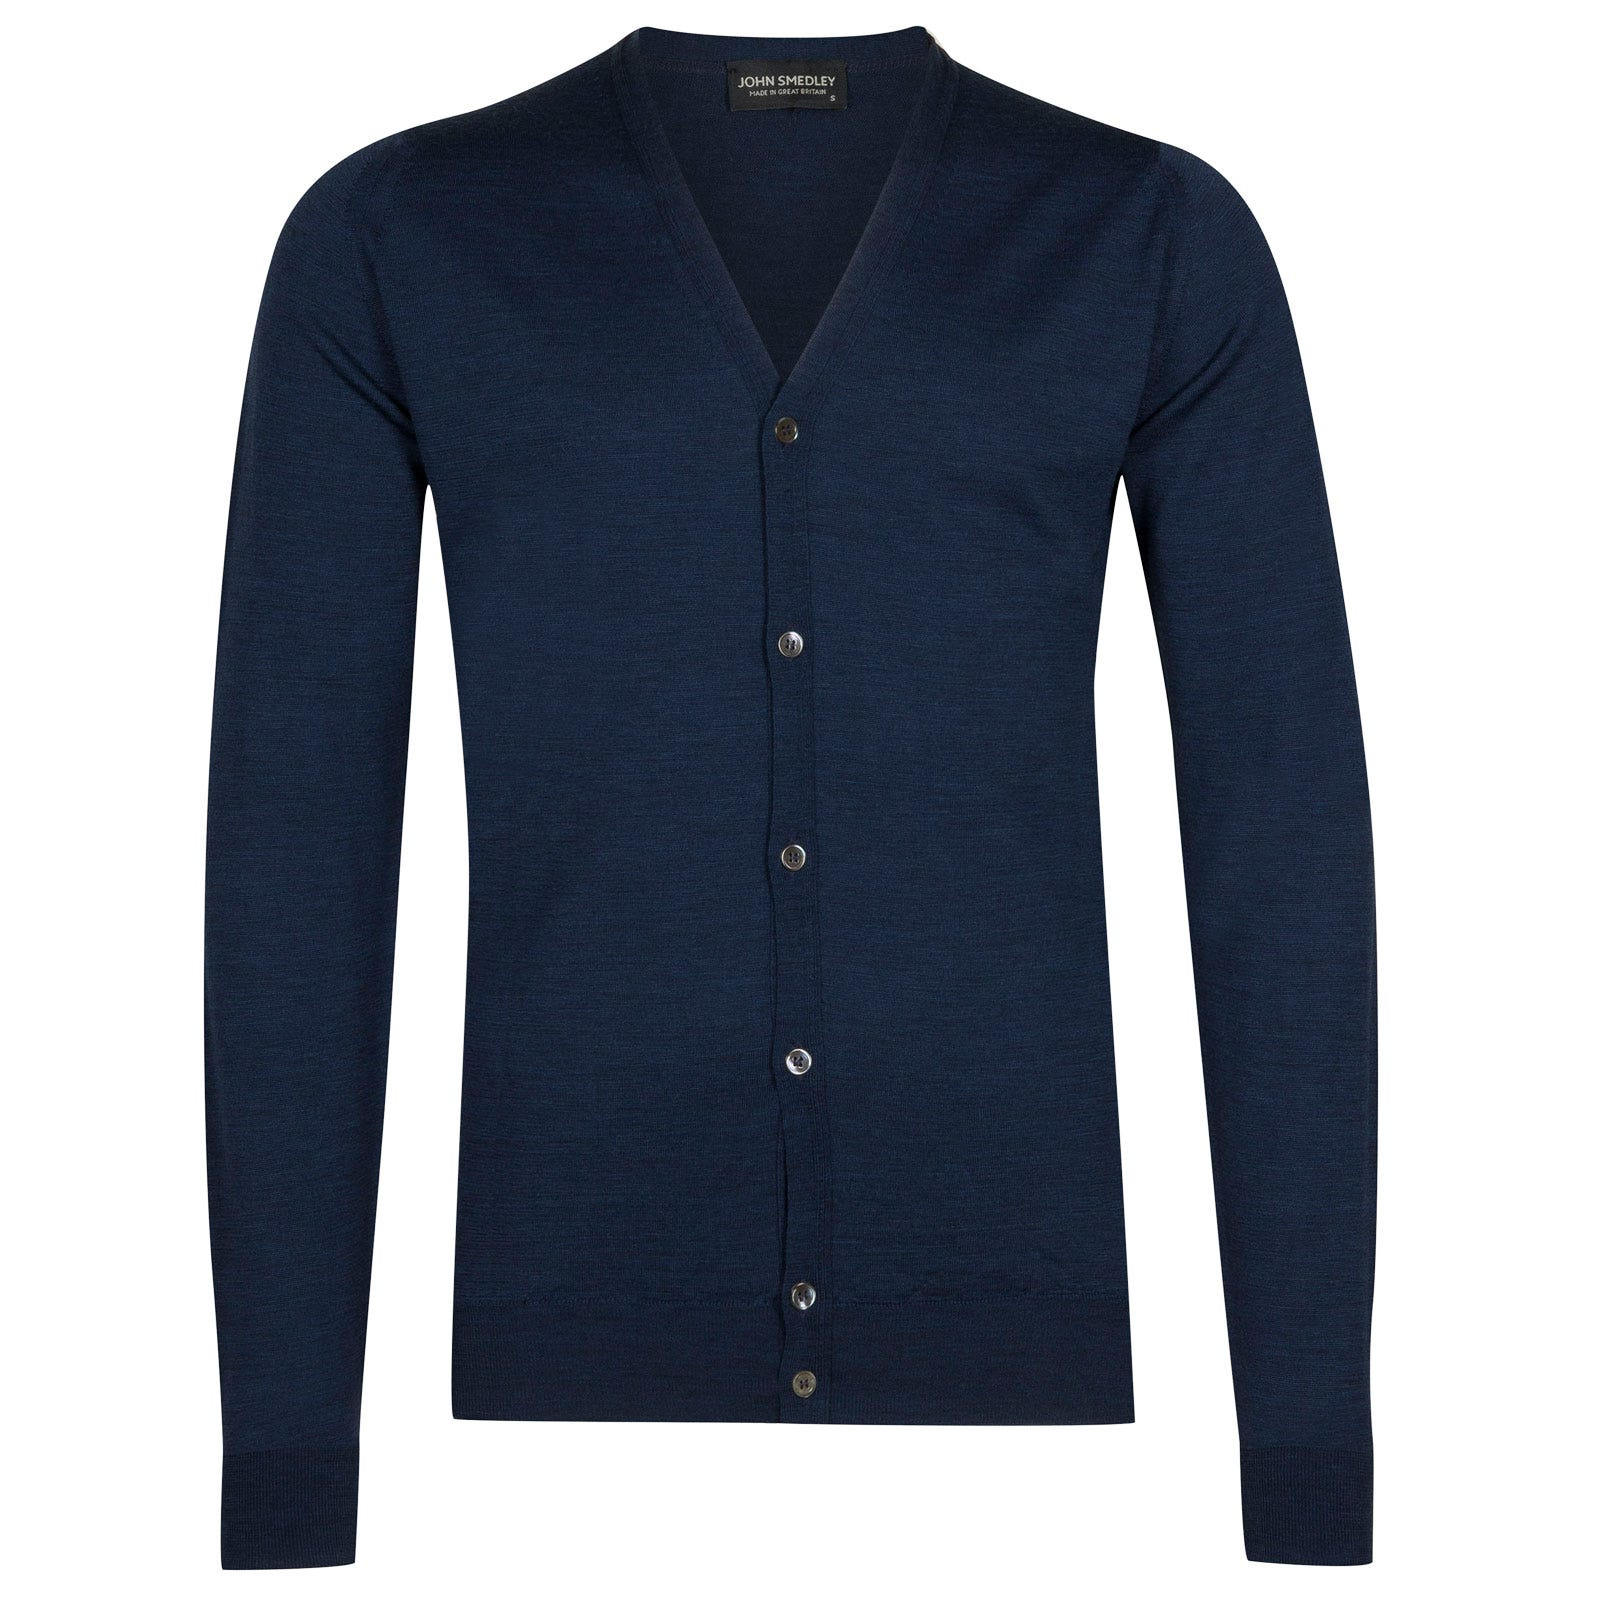 John Smedley petworth Merino Wool Cardigan in Indigo-XL